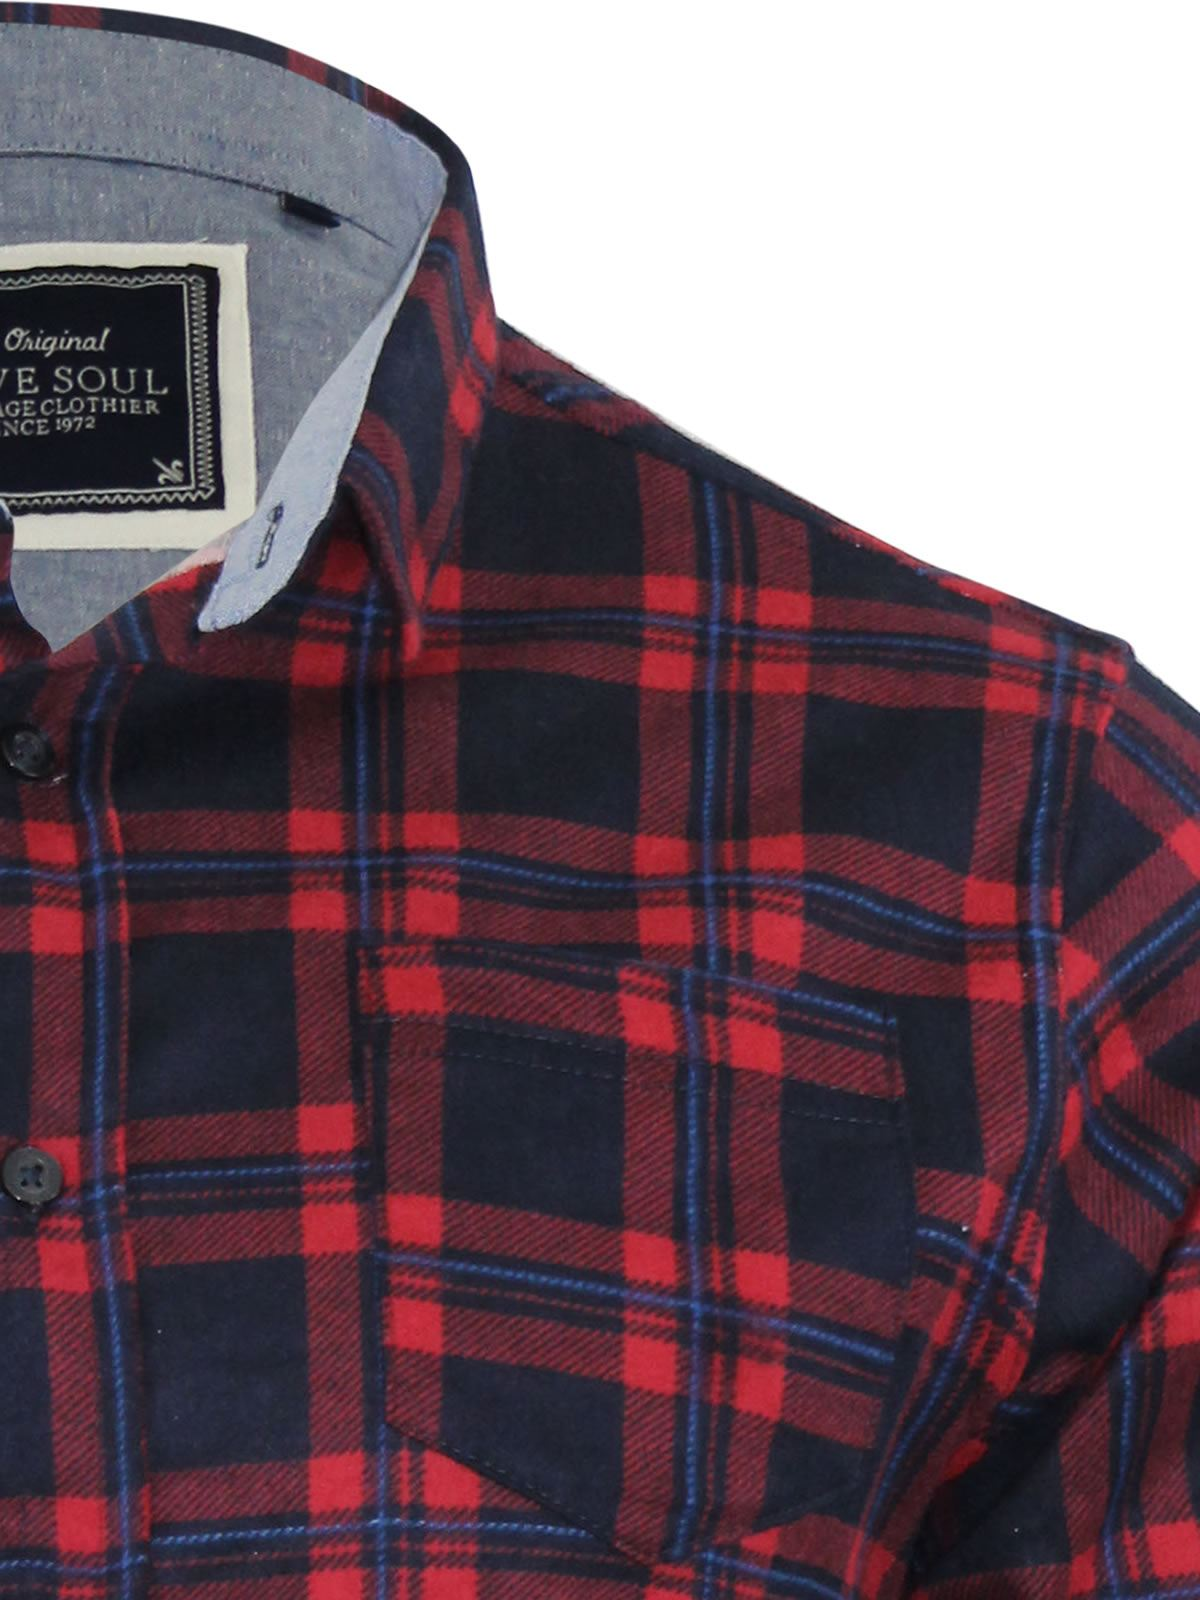 Mens-Check-Shirt-Brave-Soul-Flannel-Brushed-Cotton-Long-Sleeve-Casual-Top thumbnail 73